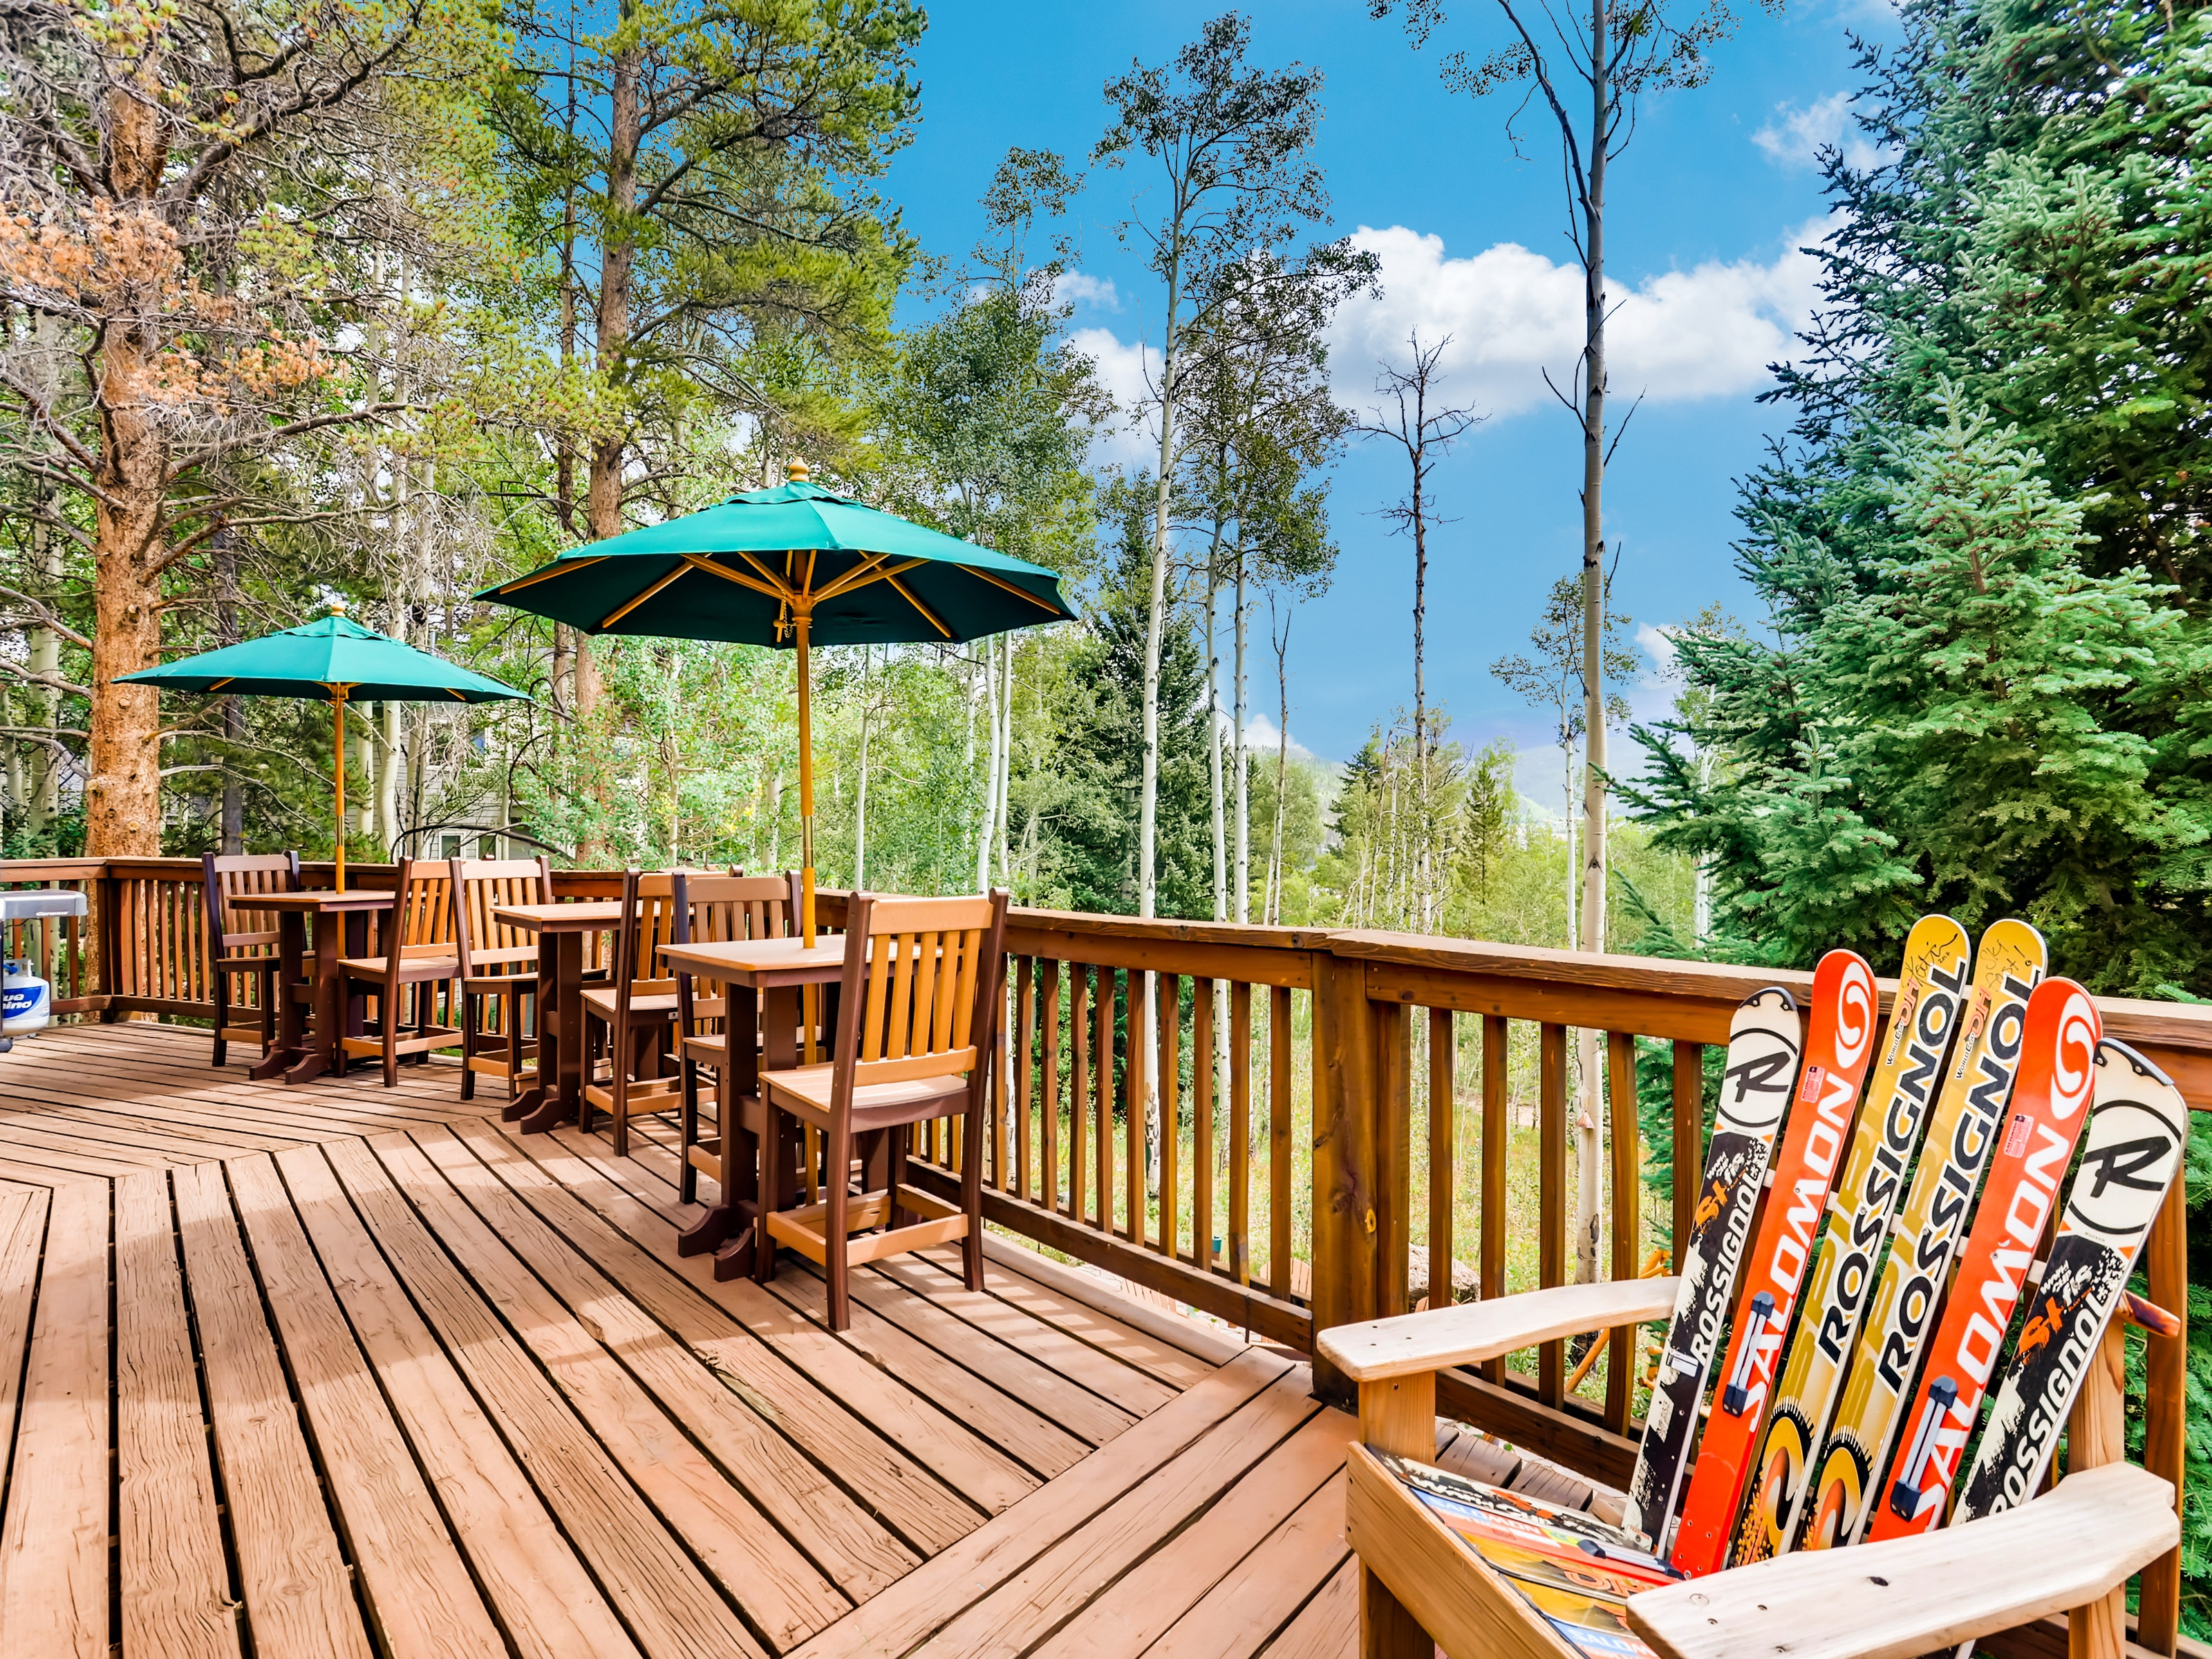 There's ample seating for alfresco meals and relaxing in the sun on the wraparound deck.